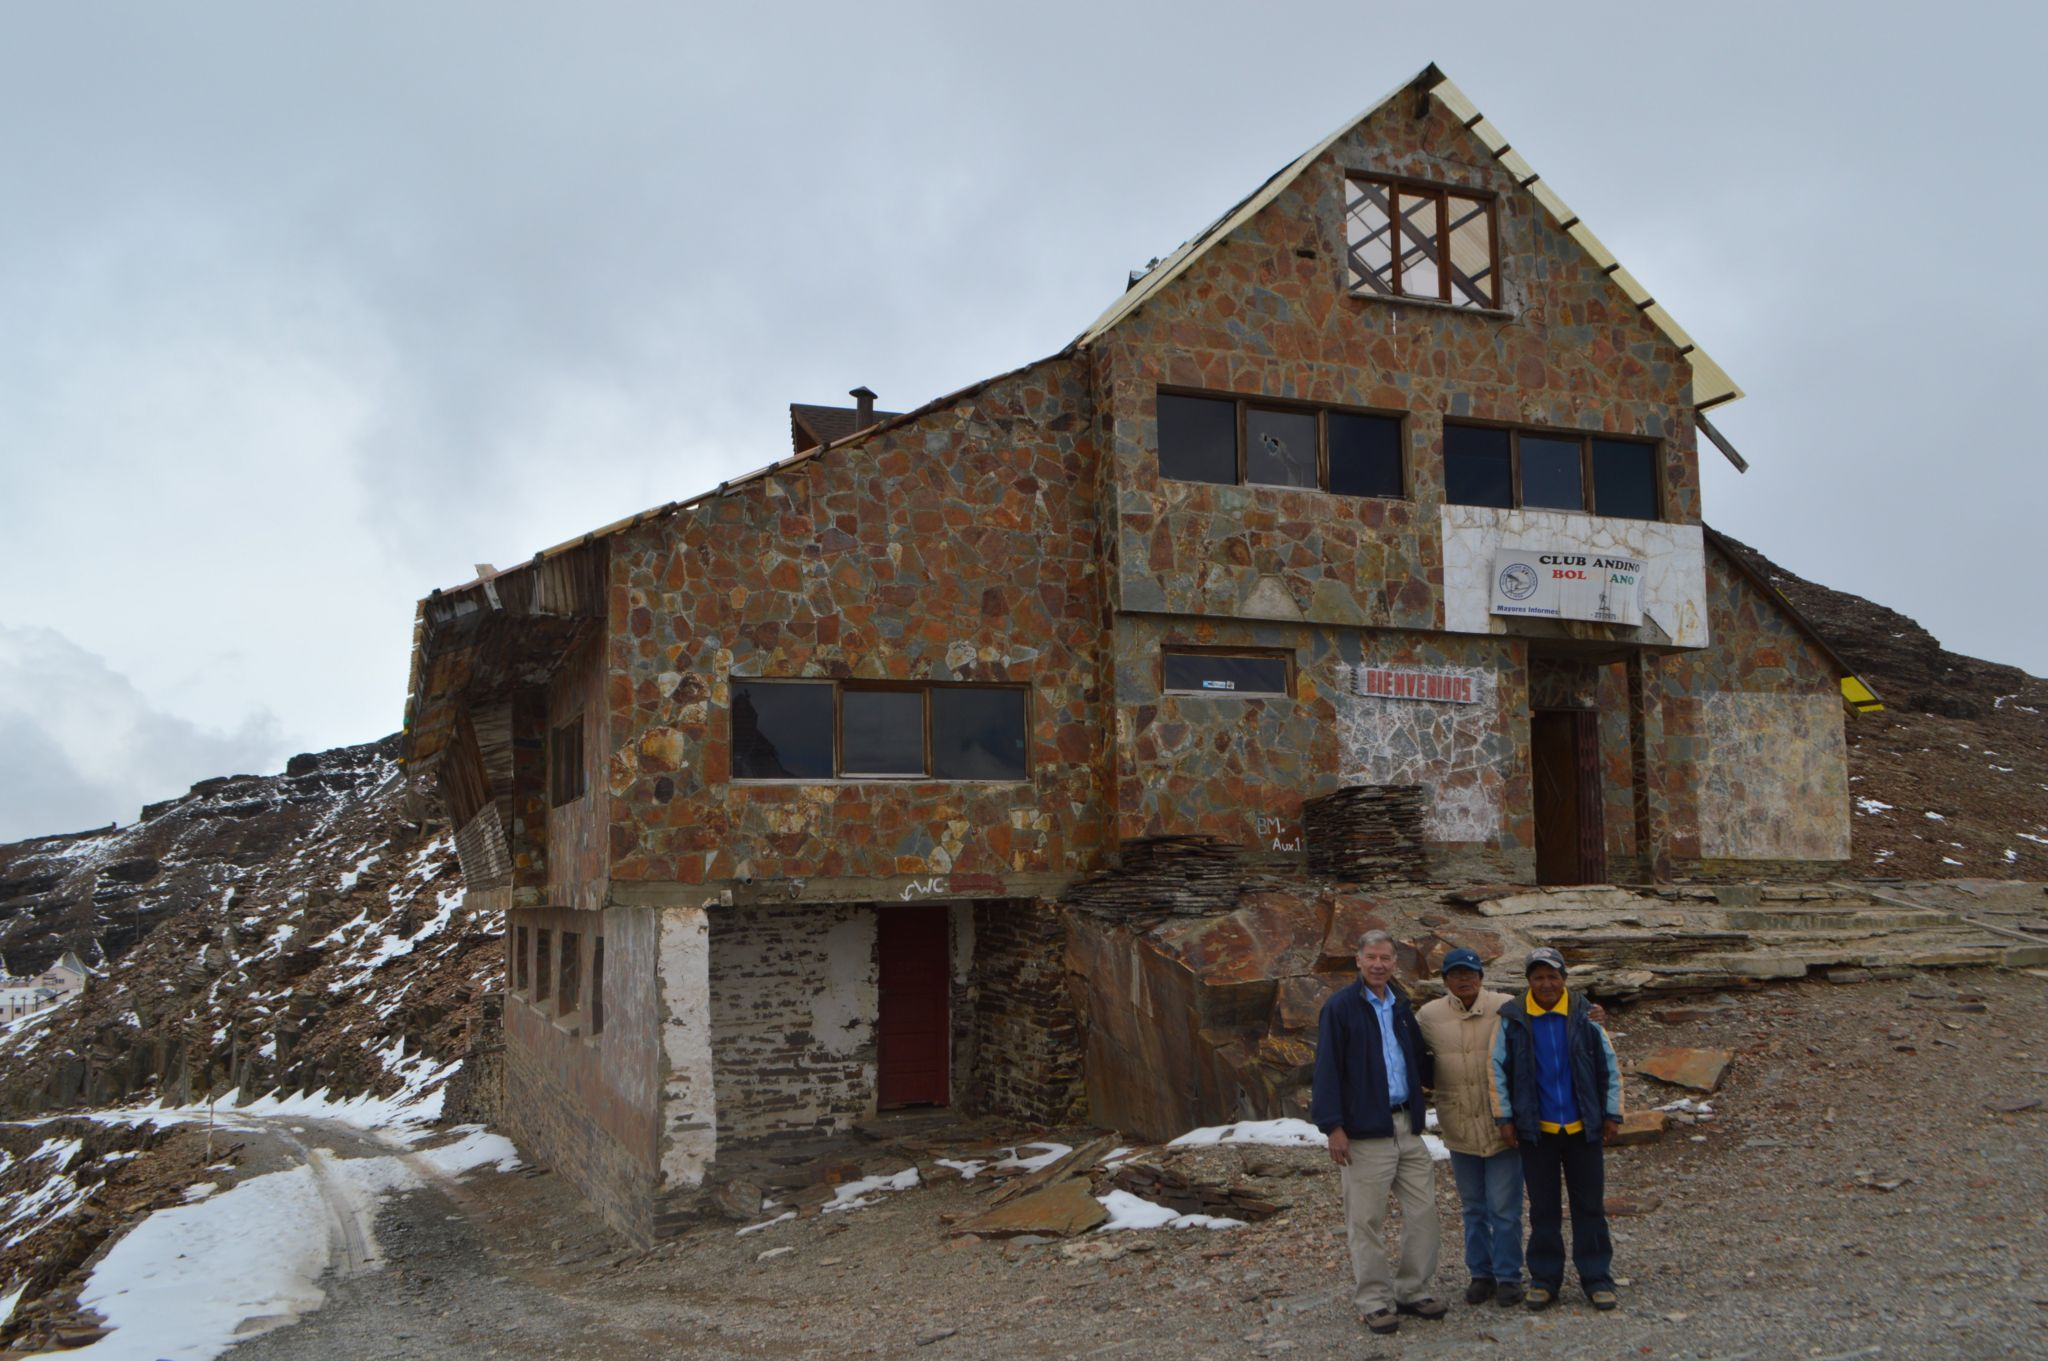 Felipe Kittelson, Samuel and Adolfo Mendoza stand in front of the abandoned ski resort of Chacaltaya